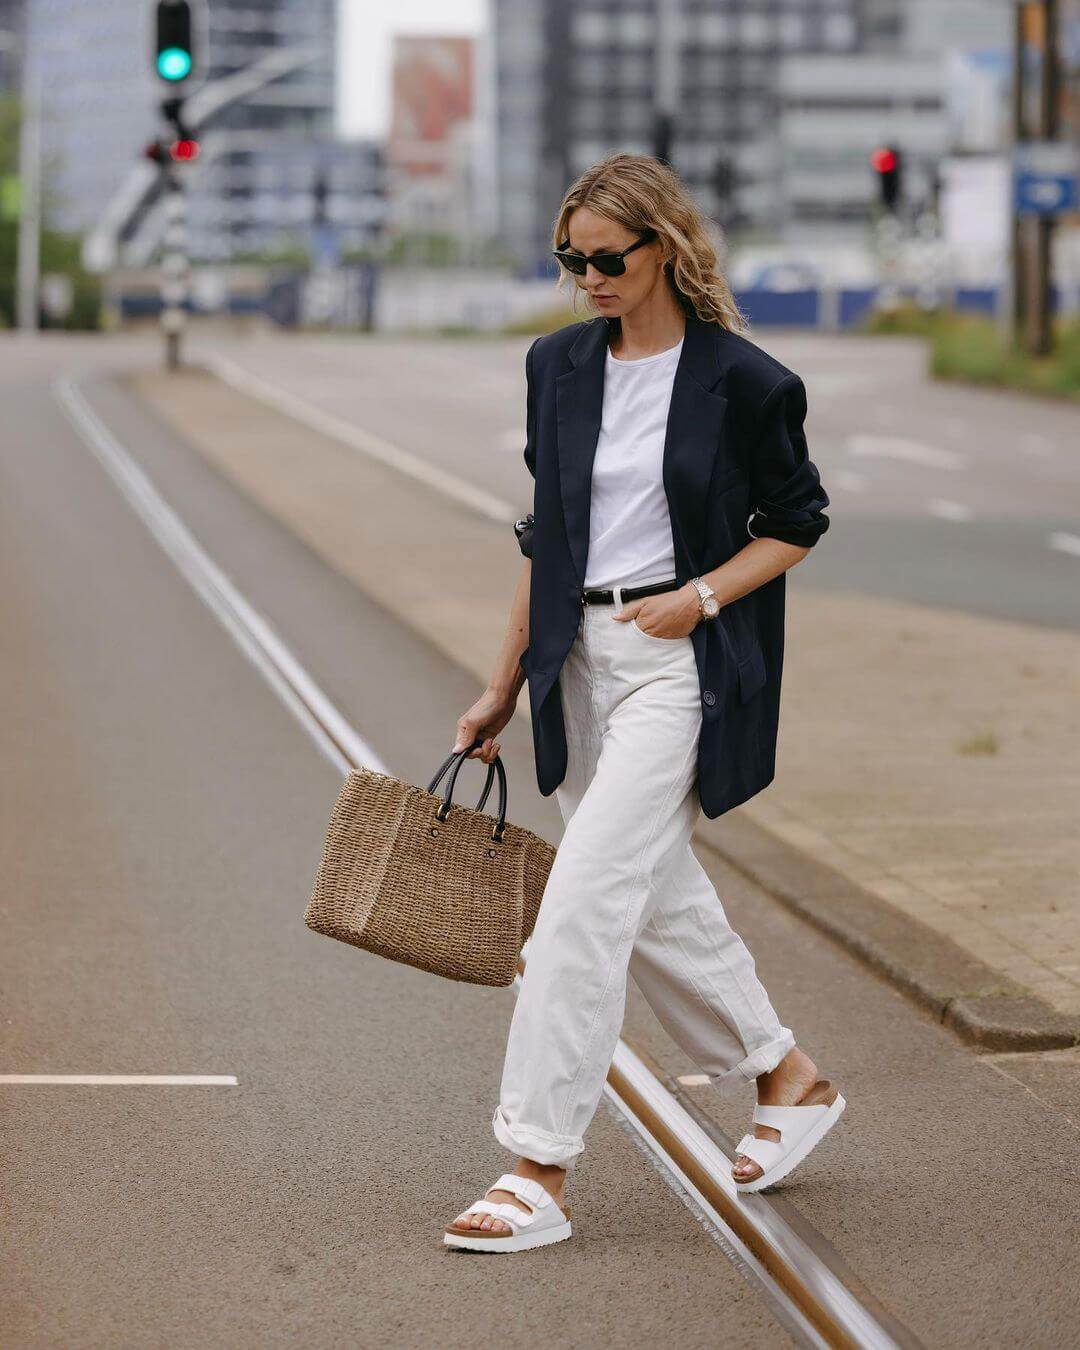 10 Refreshing Ways To Wear White Jeans After Labor Day